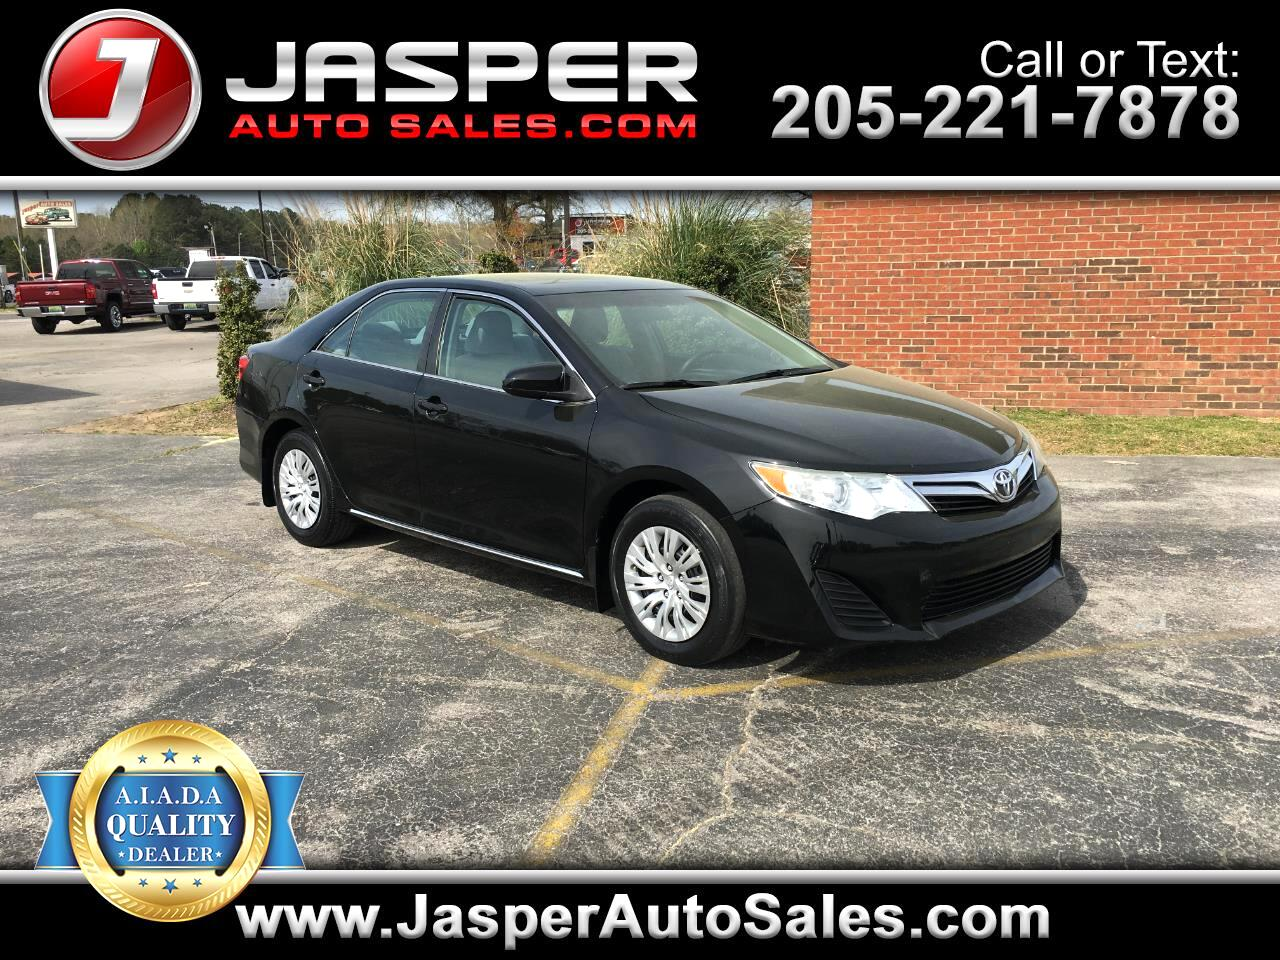 2012 Toyota Camry 2014.5 4dr Sdn I4 Auto LE (Natl)